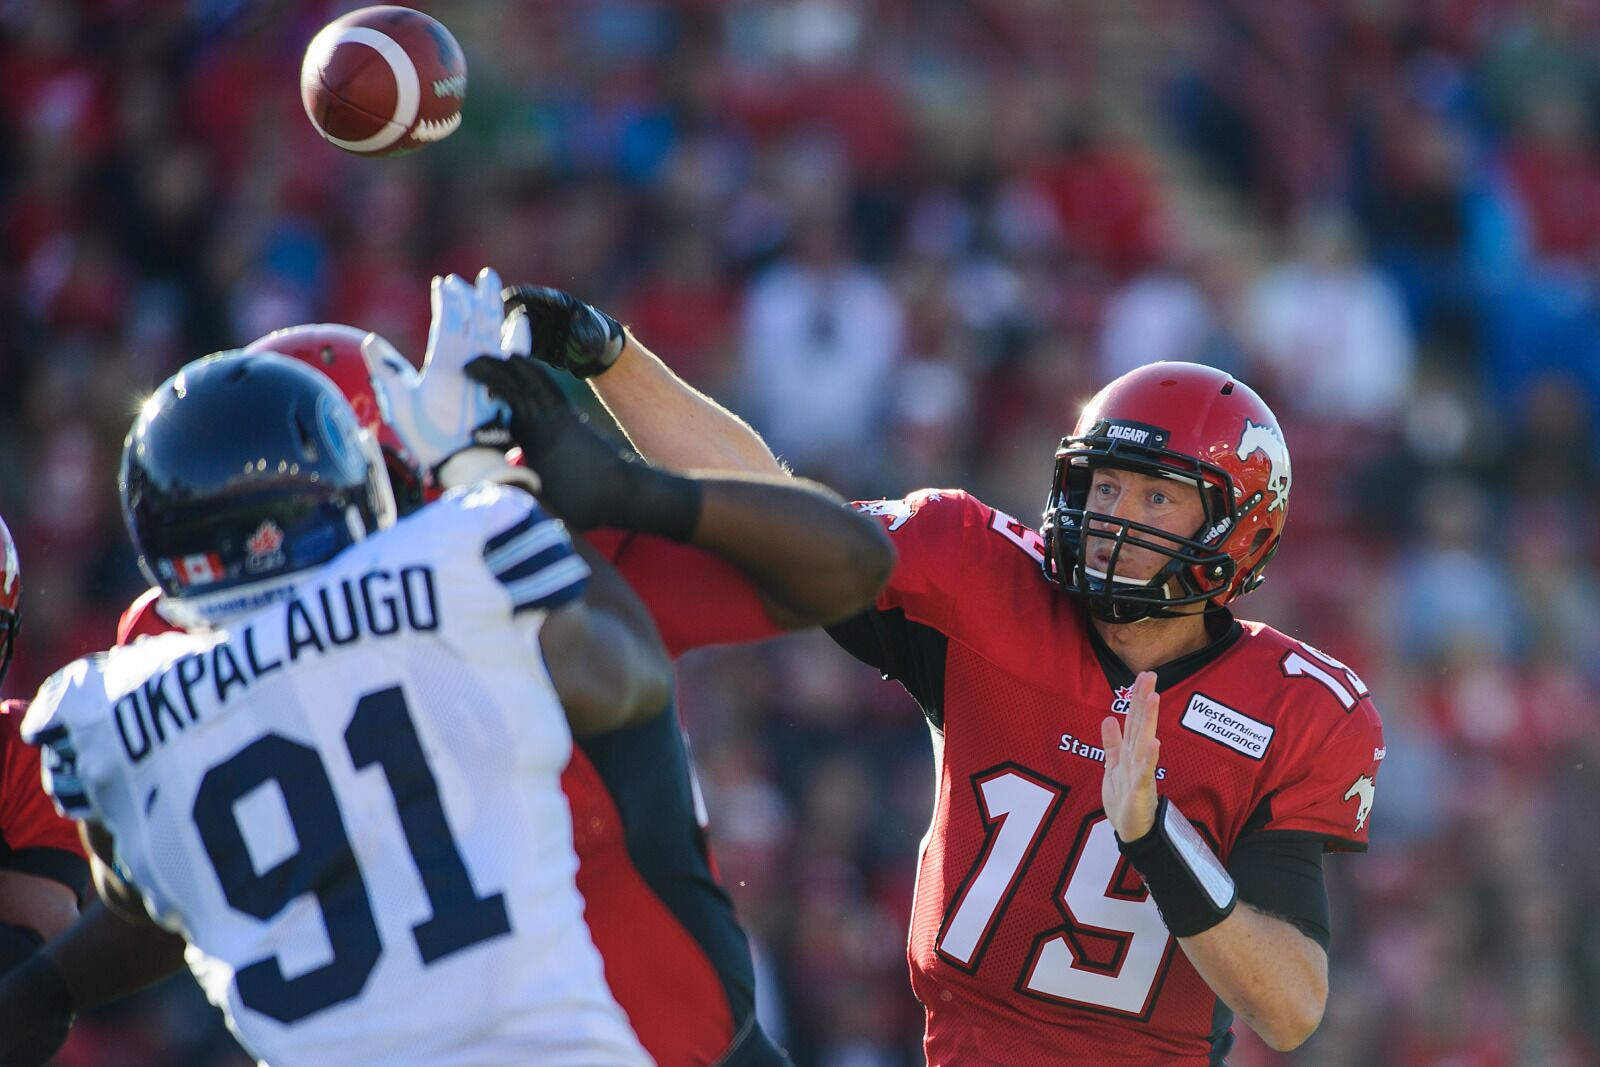 Toronto Argonauts: Mistakes pile up in frustrating loss to Stampeders